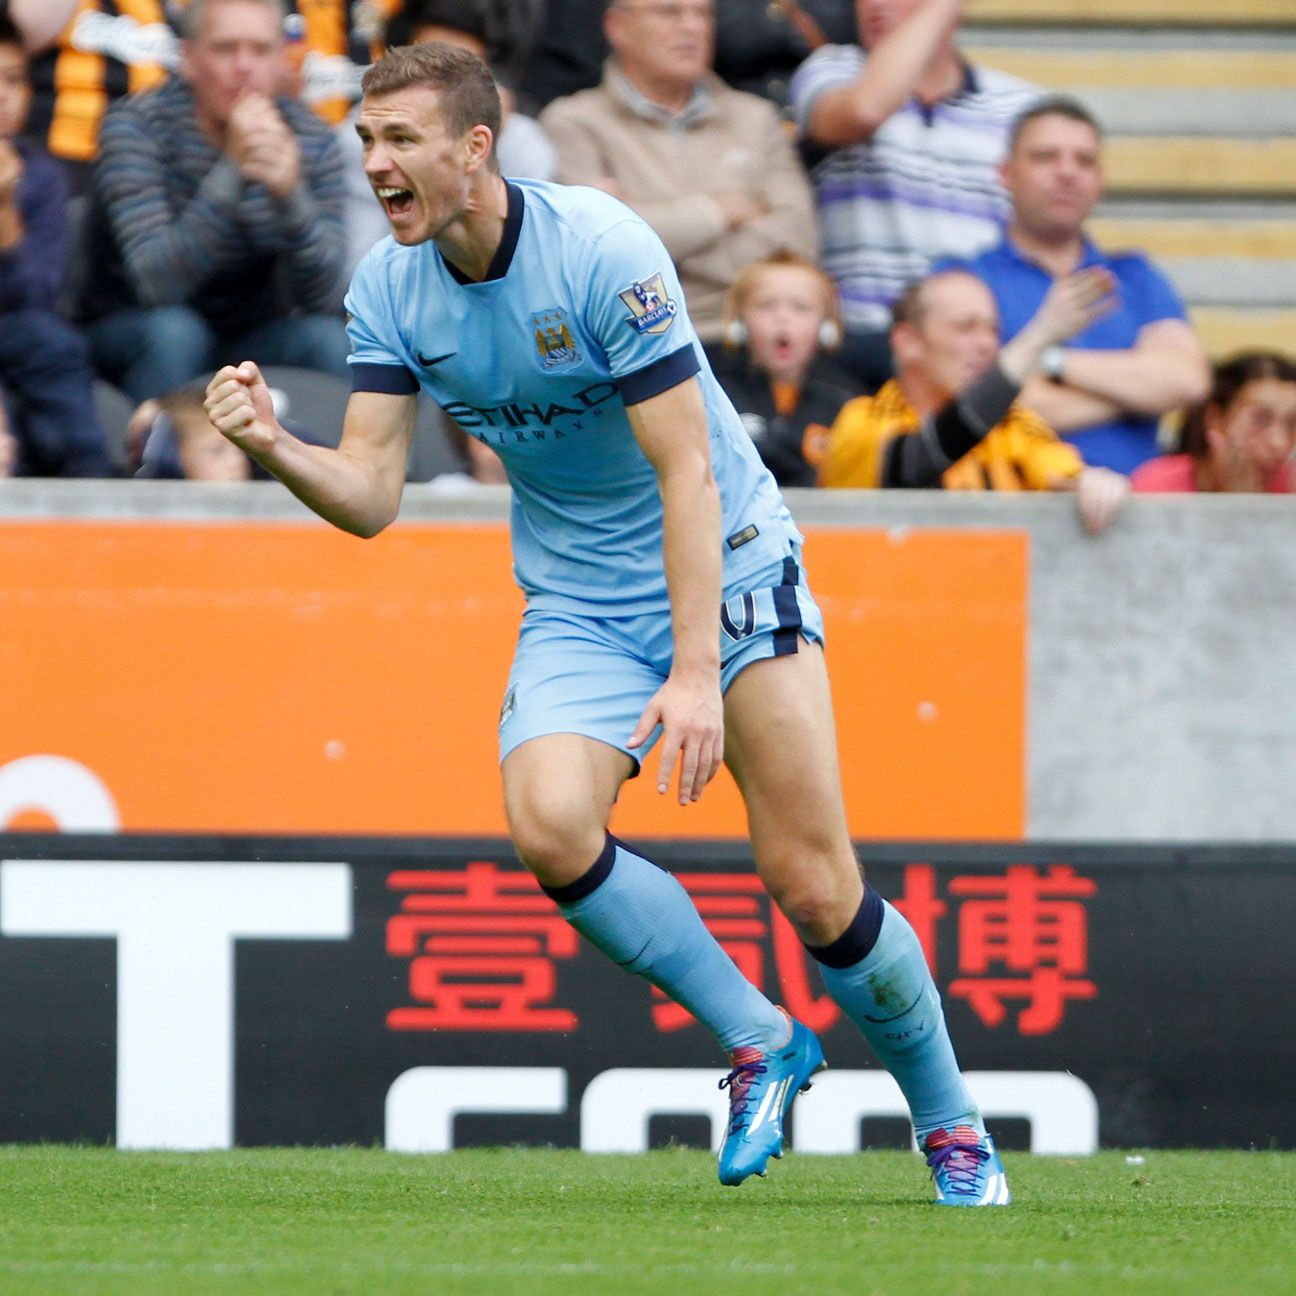 Edin Dzeko's brace versus Hull City earns his fantasy star status for the week.